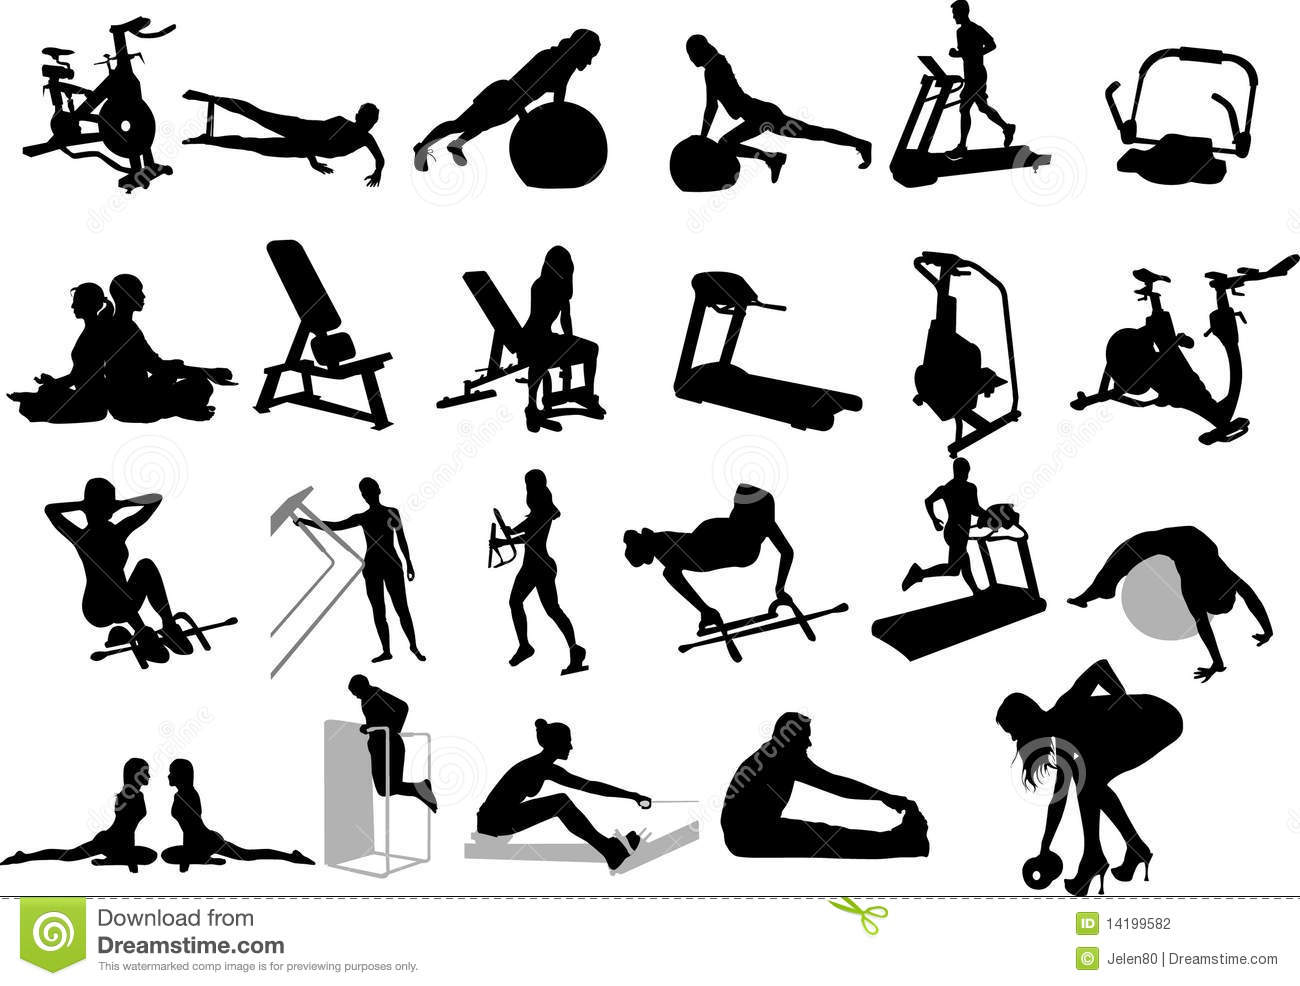 Stock Photography: Fitness silhouettes. Image: 14199582